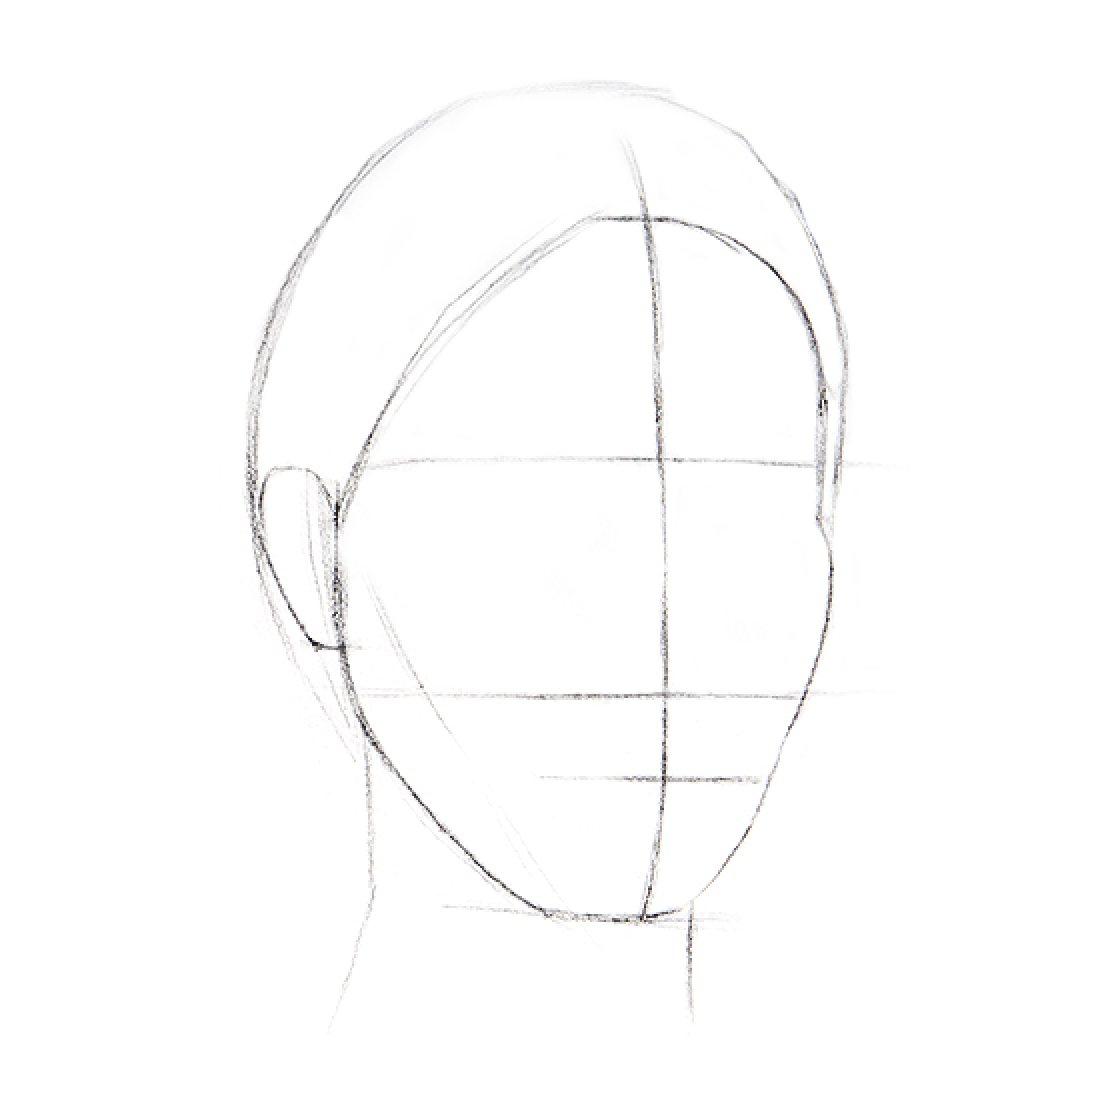 How to Draw a Head - Step 2